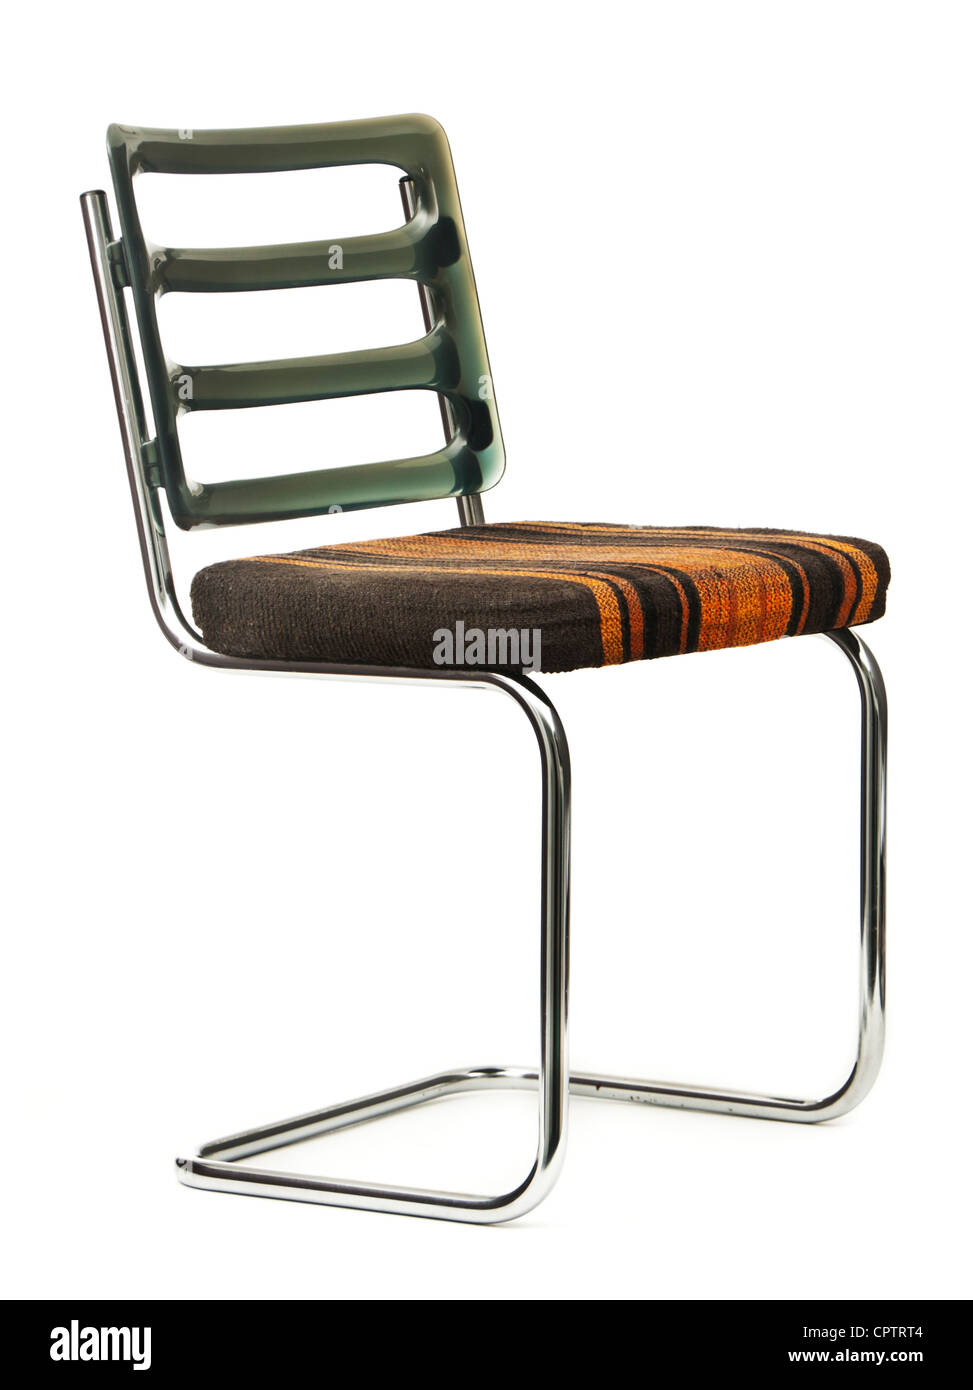 Vintage 1970's upholstered cantilever chair. This classic design was invented by Mart Stam in 1926. - Stock Image